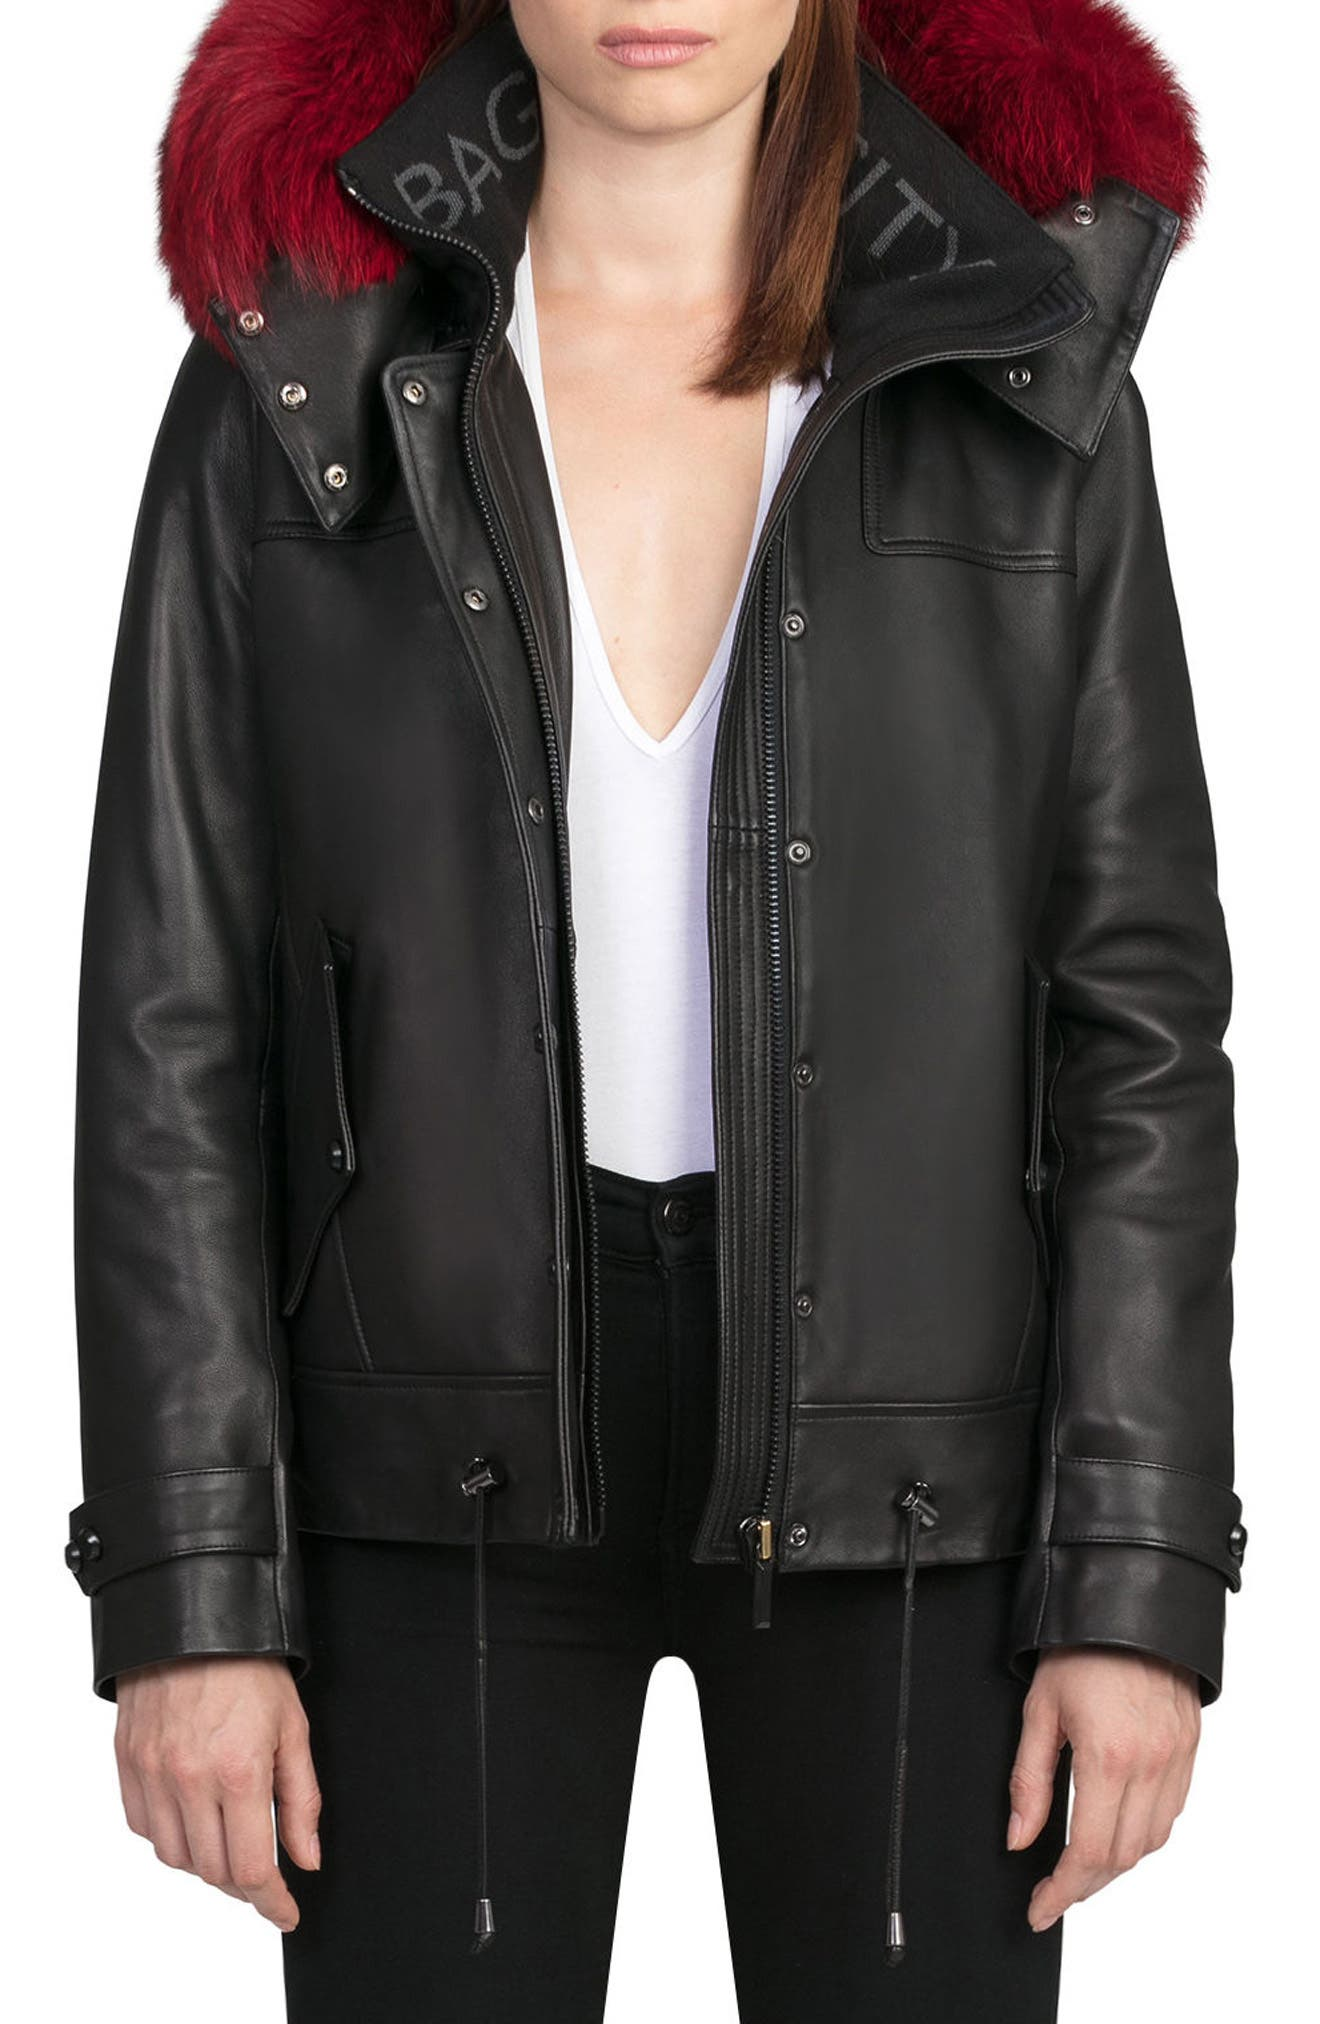 BAGATELLE.CITY The Aspen Leather Jacket with Genuine Fox Fur Trim,                         Main,                         color, Black/ Red